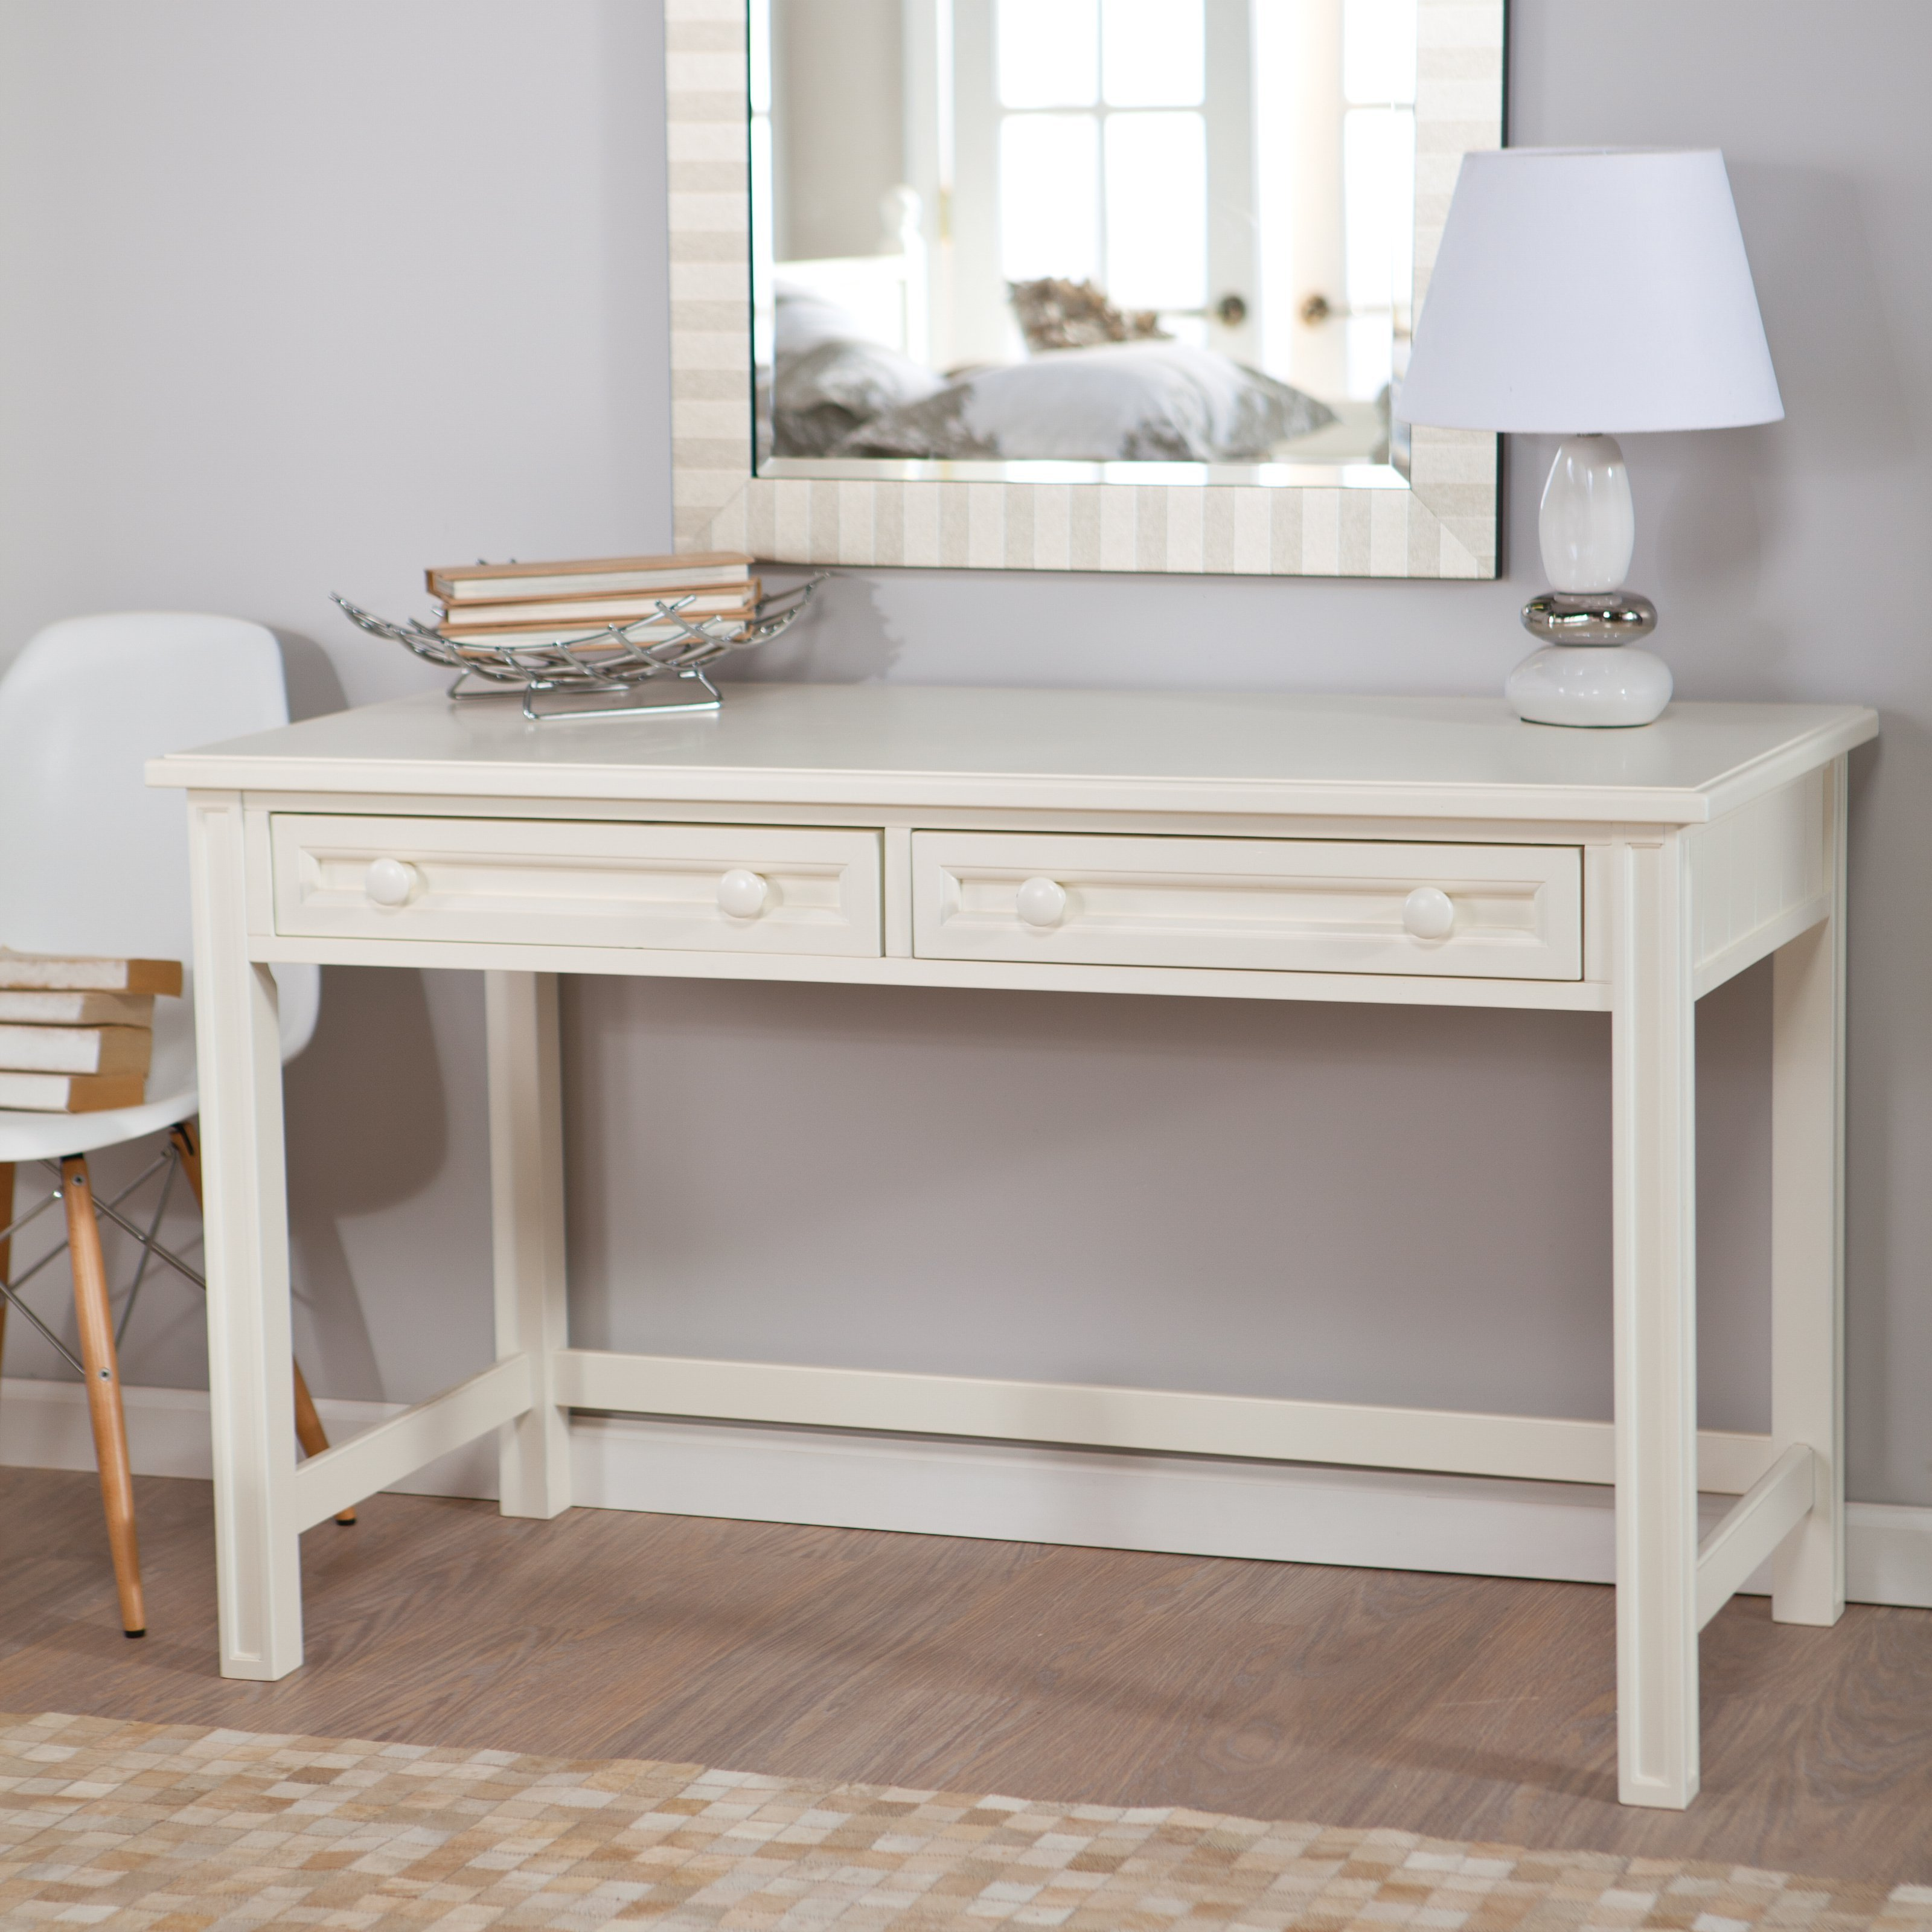 Best Belham Living Casey White Bedroom Vanity Kids Bedroom Vanities At Hayneedle With Pictures